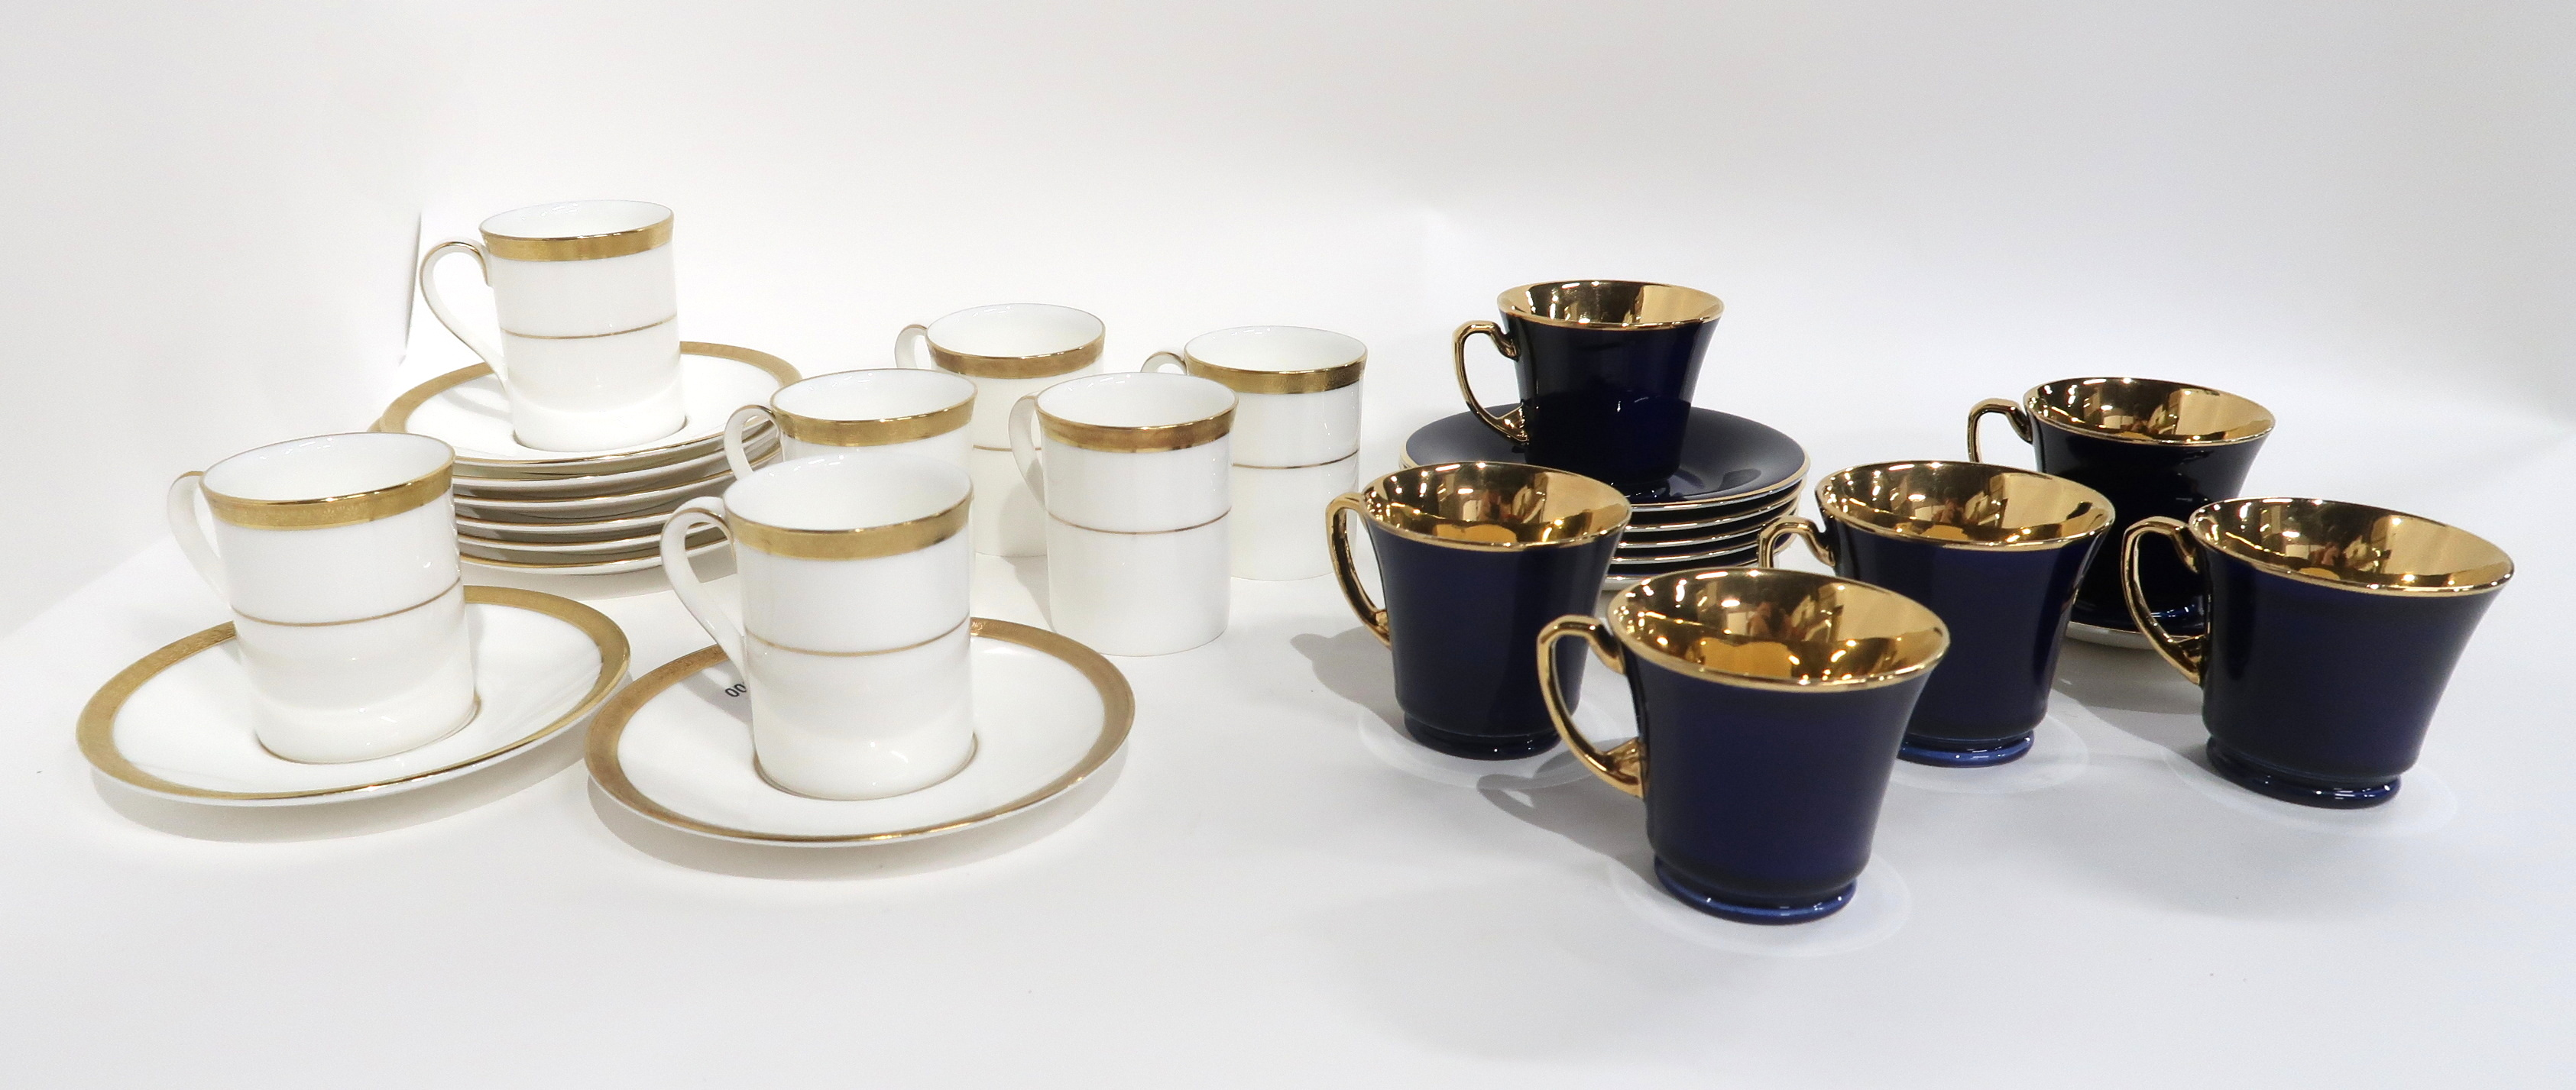 SIX CROWN DEVON DARK BLUE AND GILT COFFEE CUPS AND SAUCERS together with seven Royal Doulton Royal